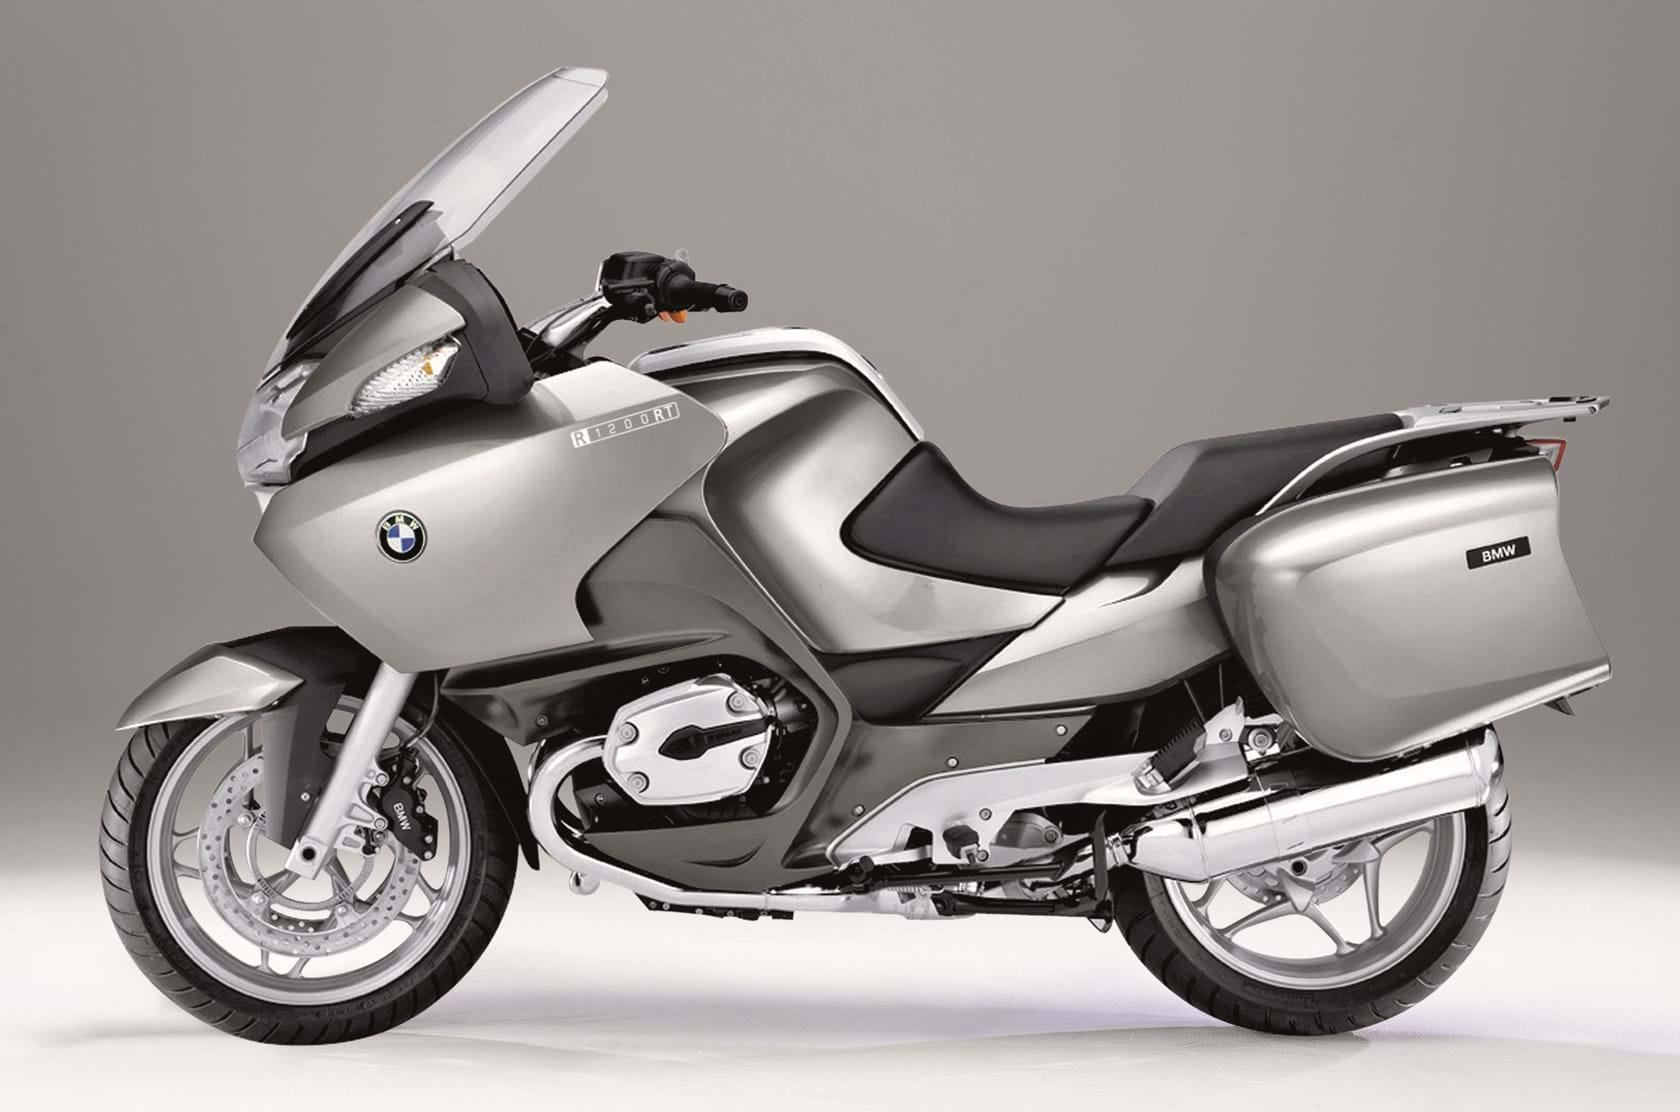 BMW R1200RT Review